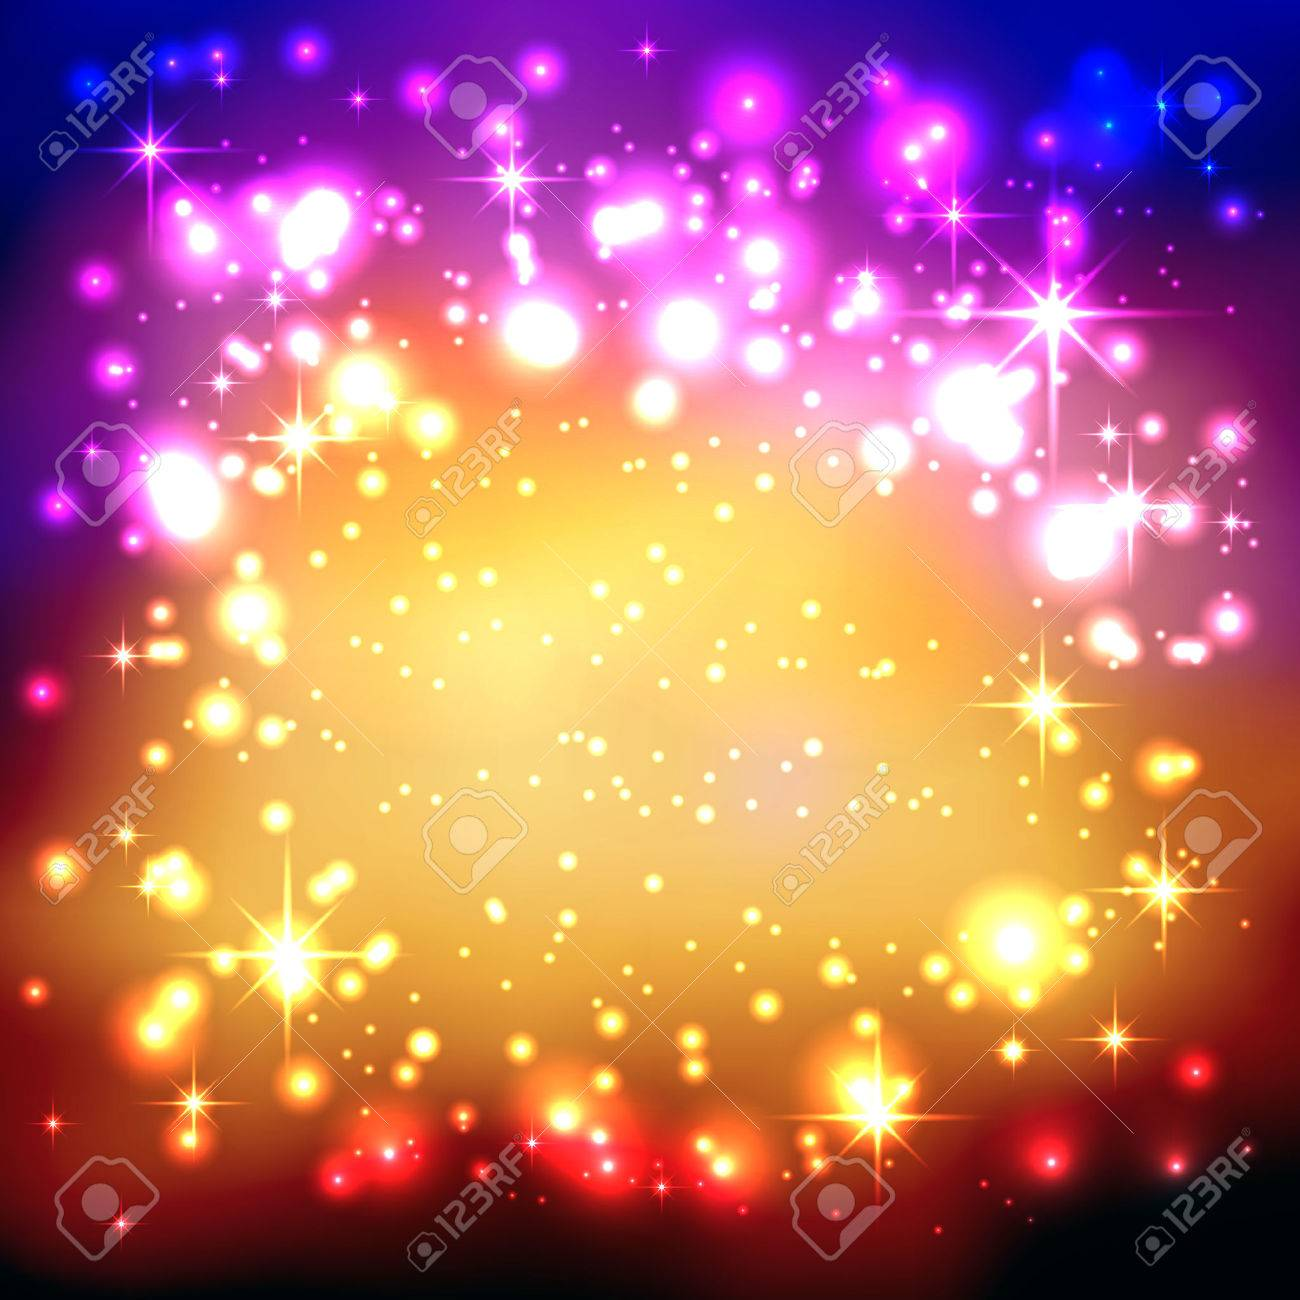 Colorful Gradient Background with Twinkling and Glittering Stars. Free Space for Advertising or Text. Greeting Card, Invitation Card. New Years Eve Celebration and Christmas Season Backdrop Template. - 46392130